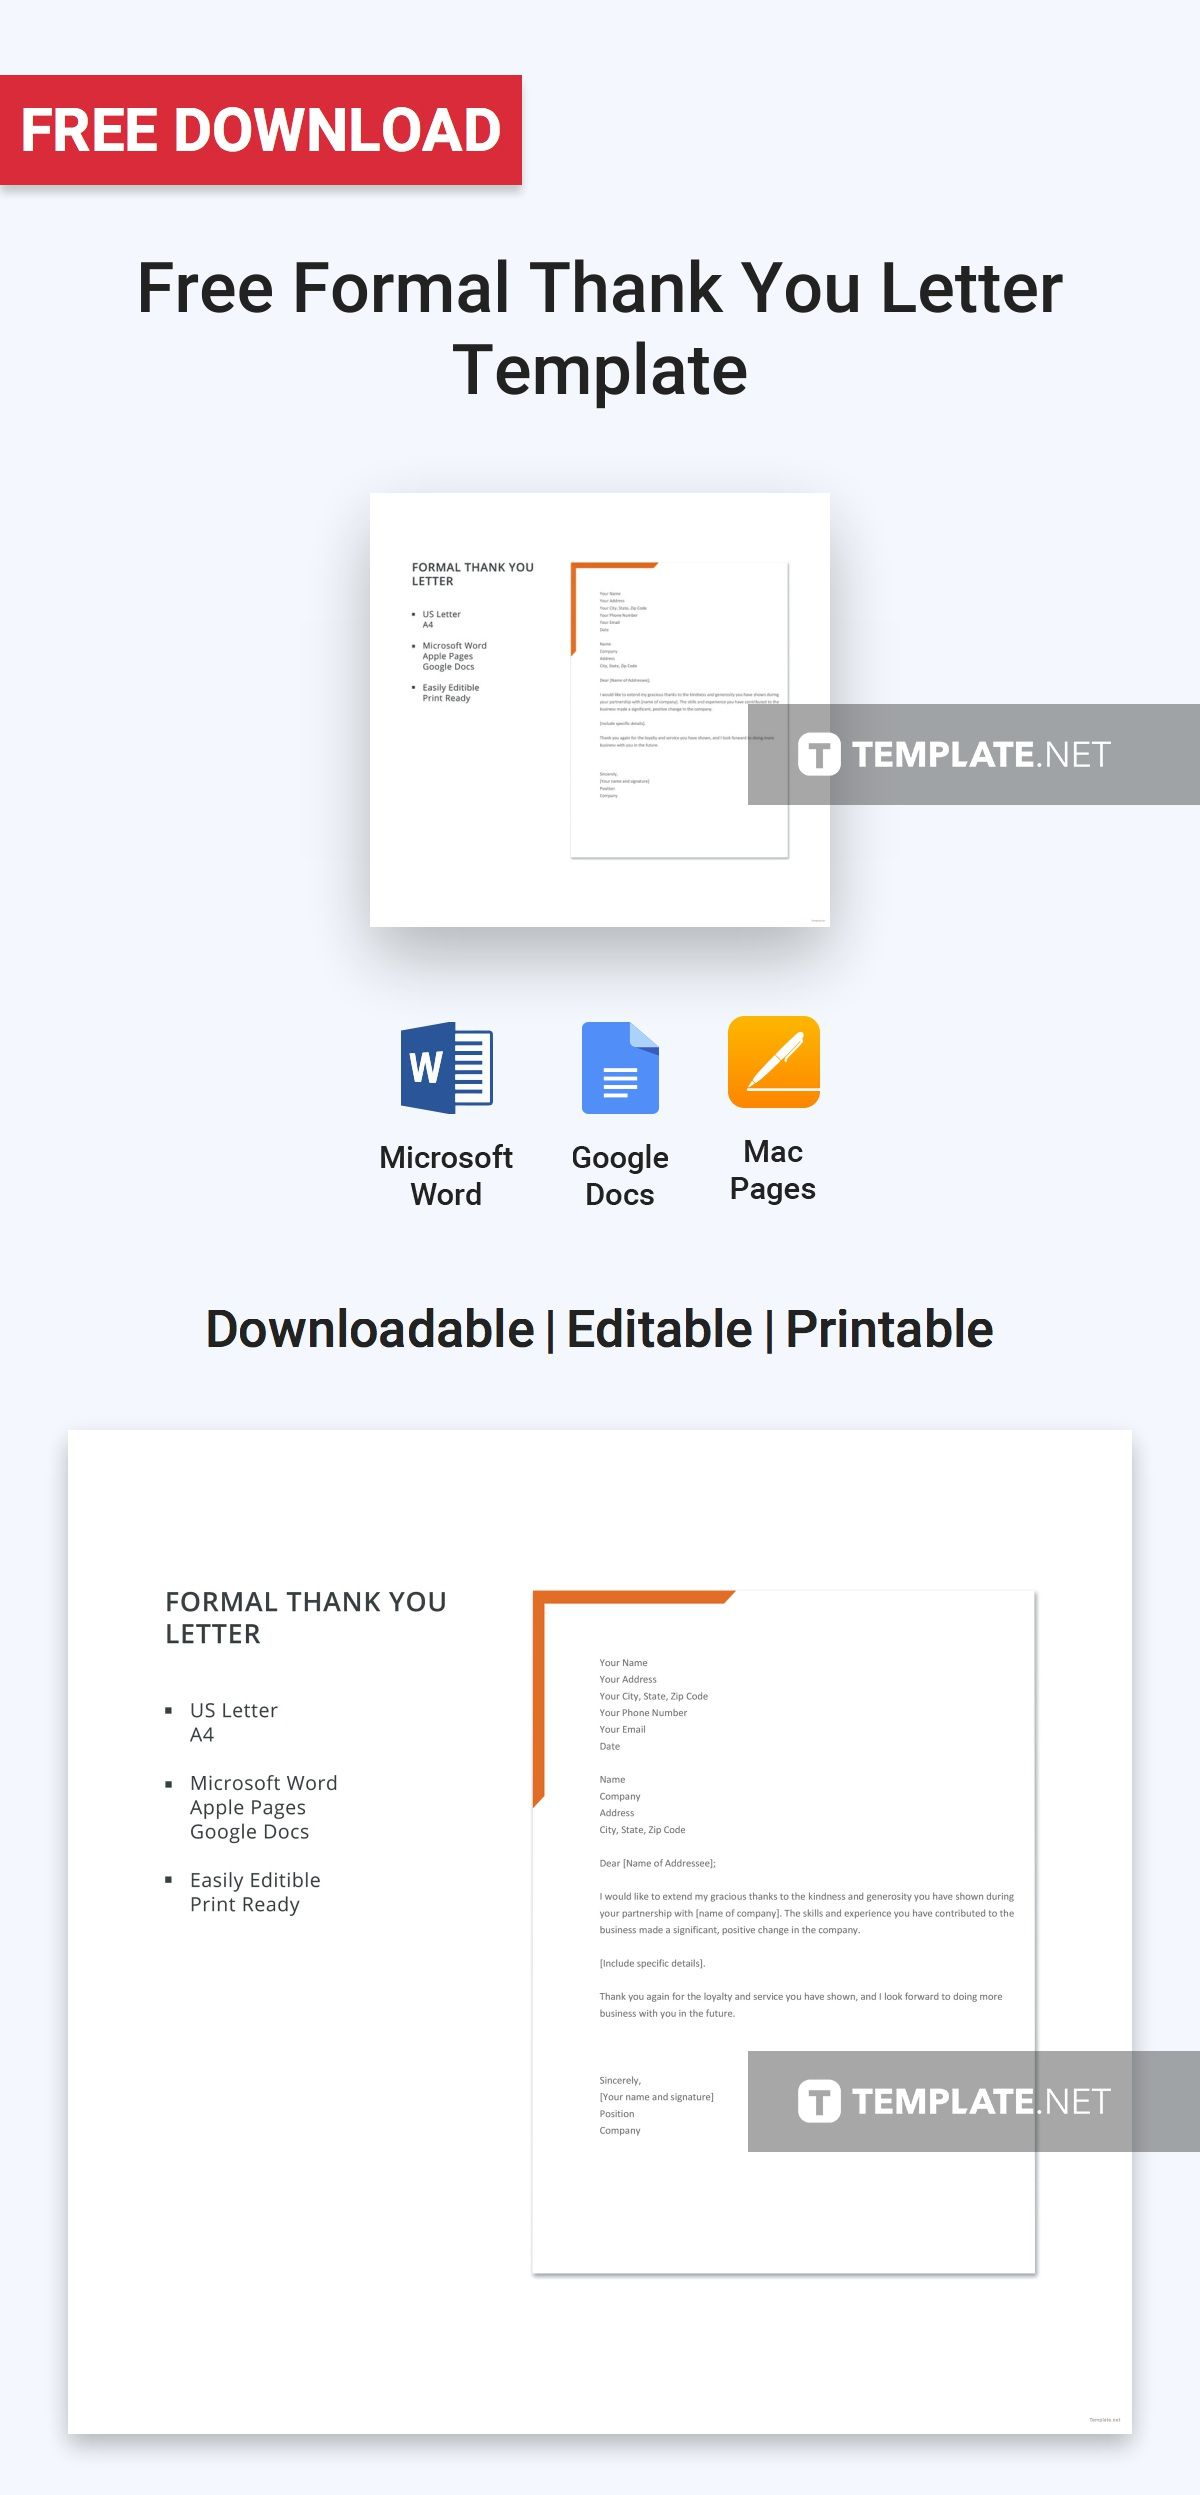 Free Formal Thank You Letter Letter Templates Designs 2019